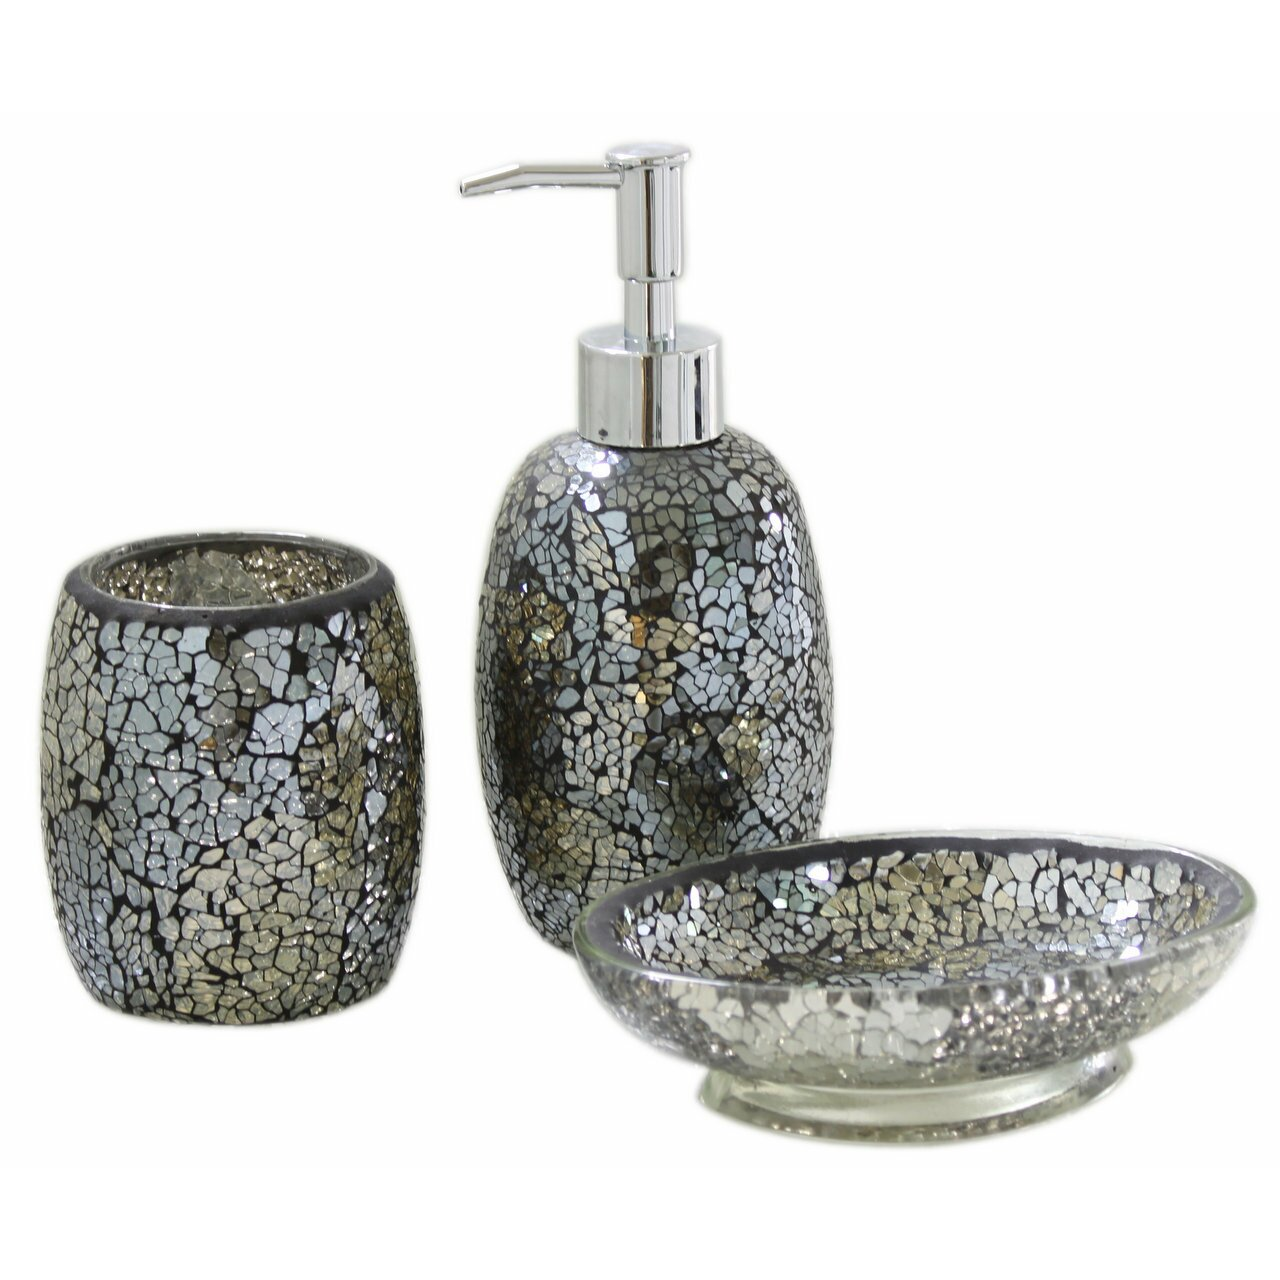 House additions mosaic bathroom accessory set reviews for Grey silver bathroom accessories